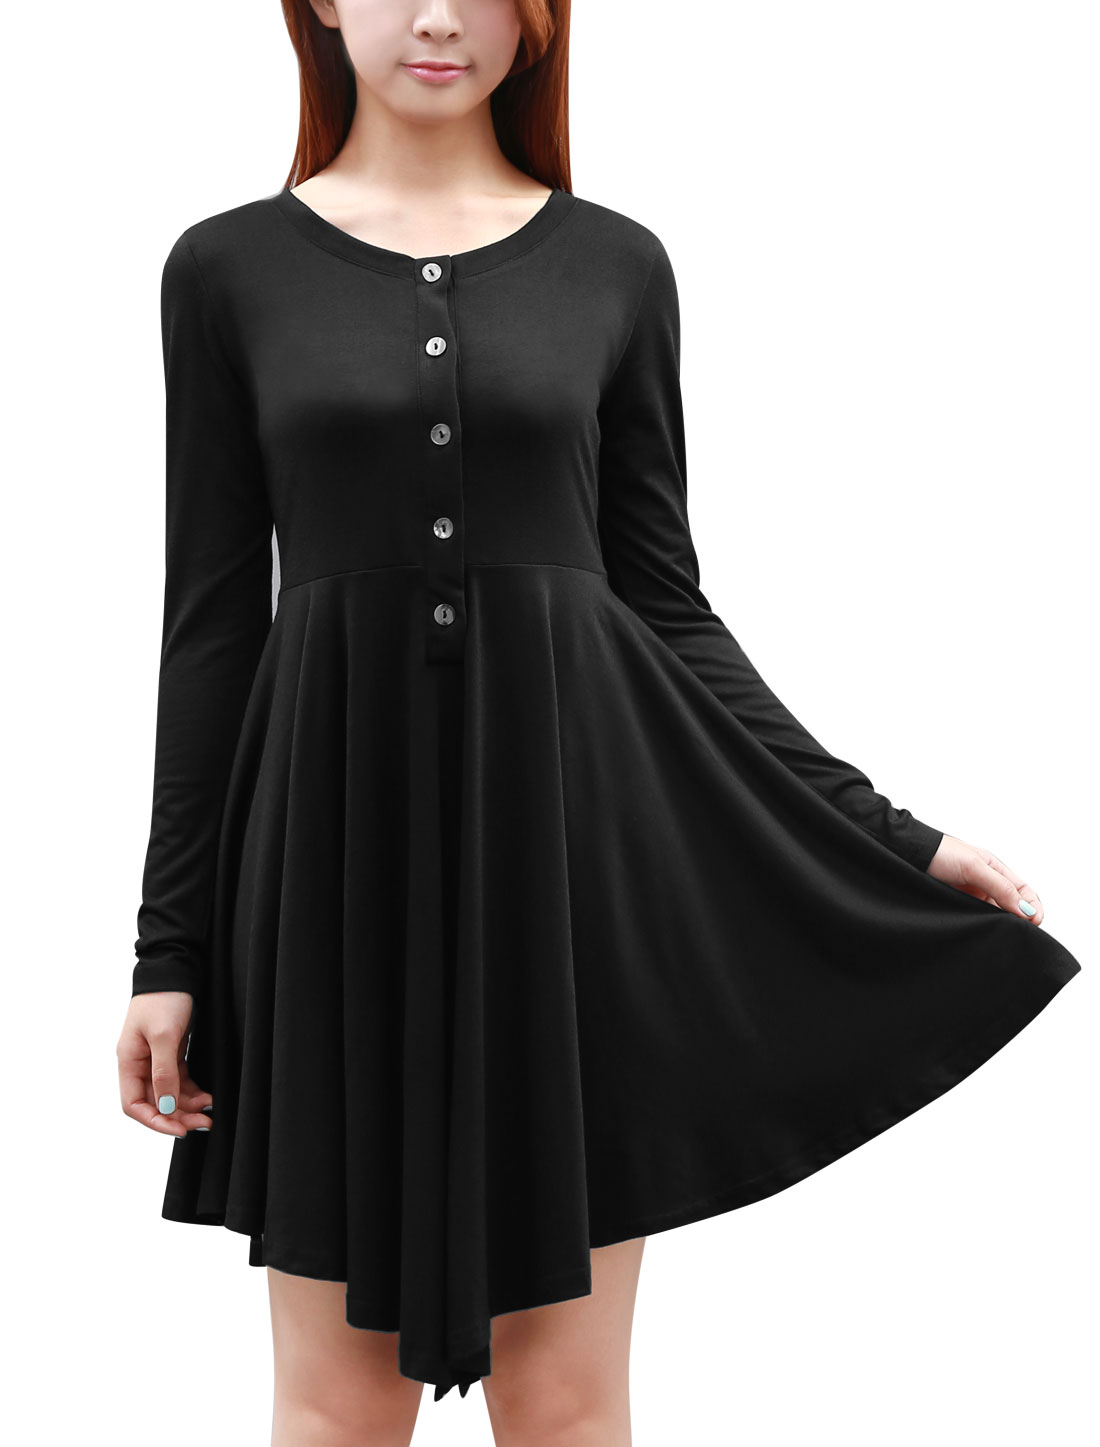 Women Buttons Closed Front Long-Sleeved Leisure A Line Dress Black S